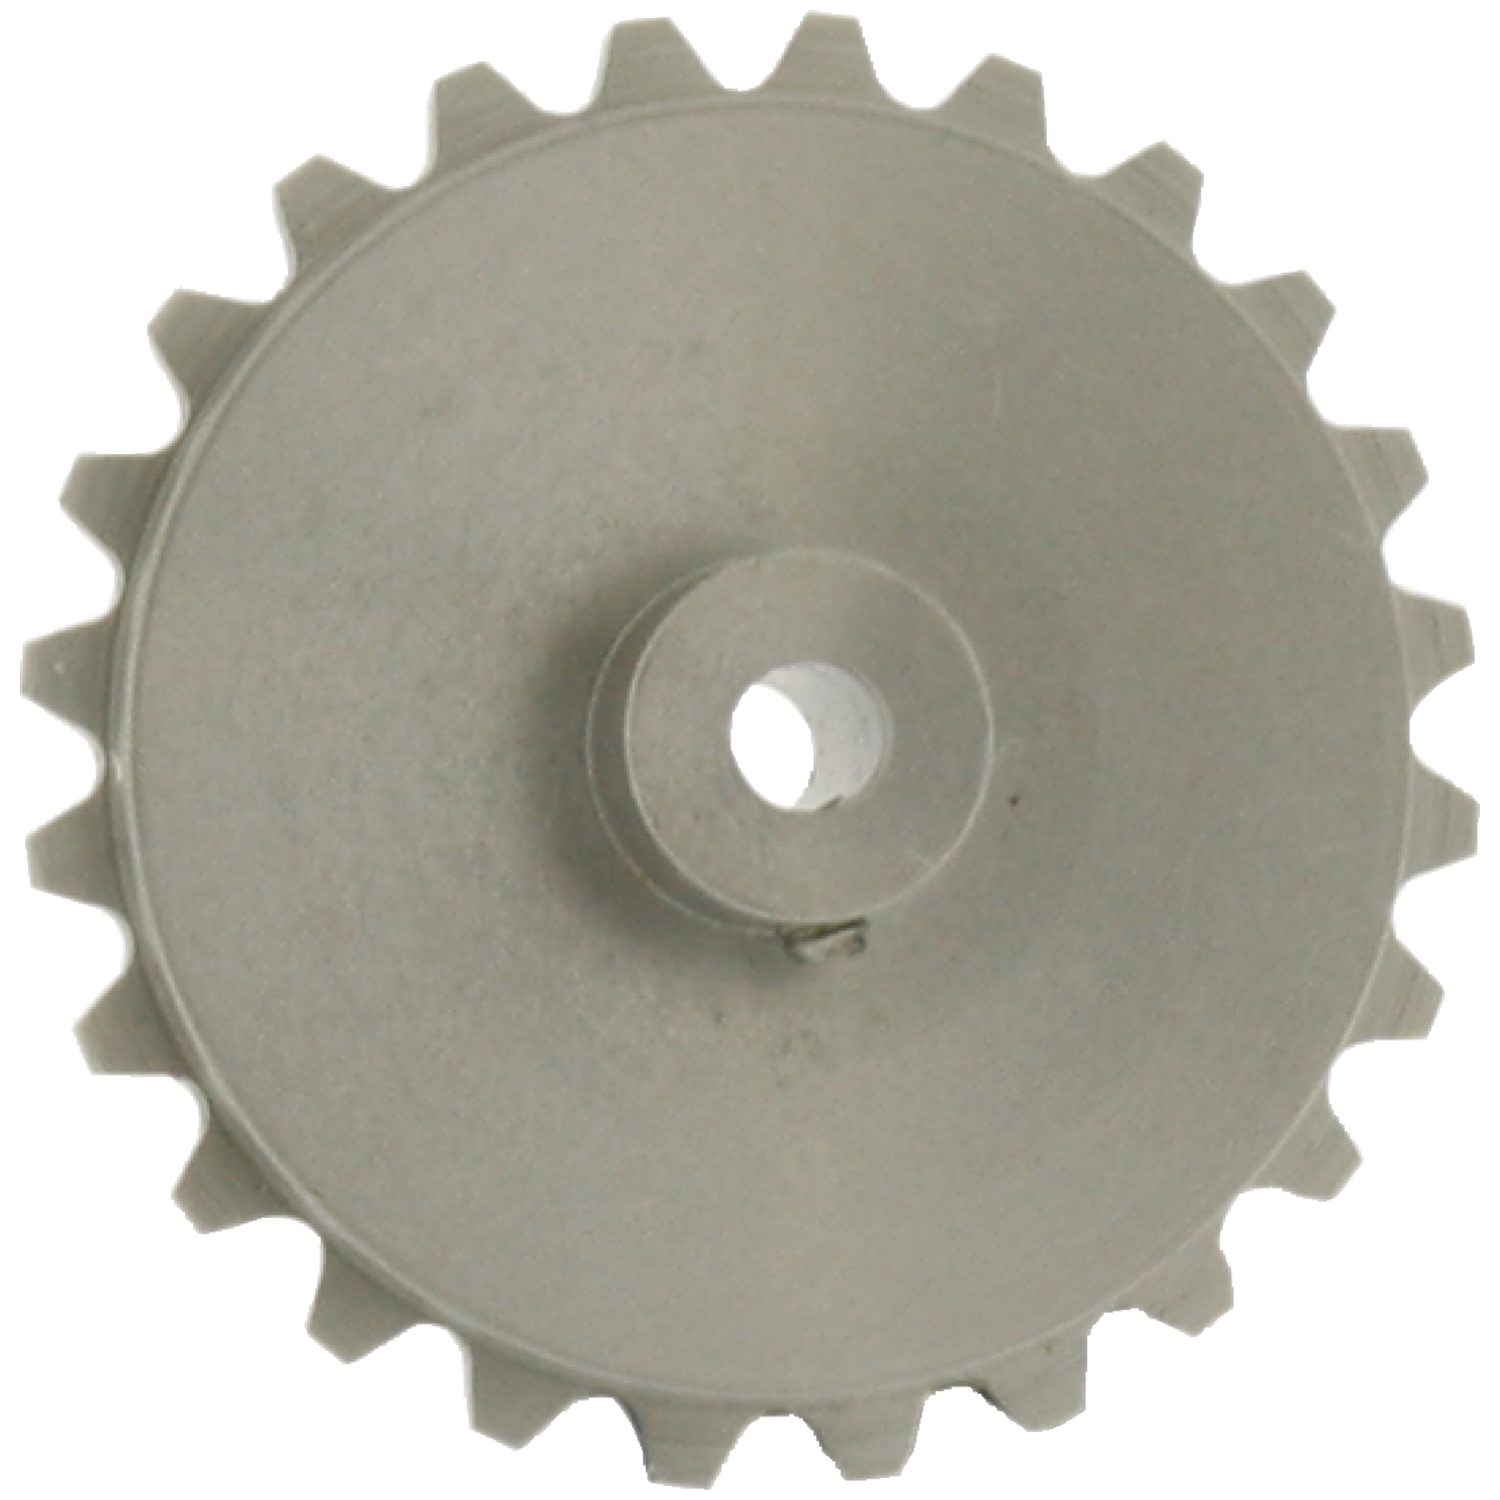 R1071 - Chain Sprockets - aluminium, pin hub